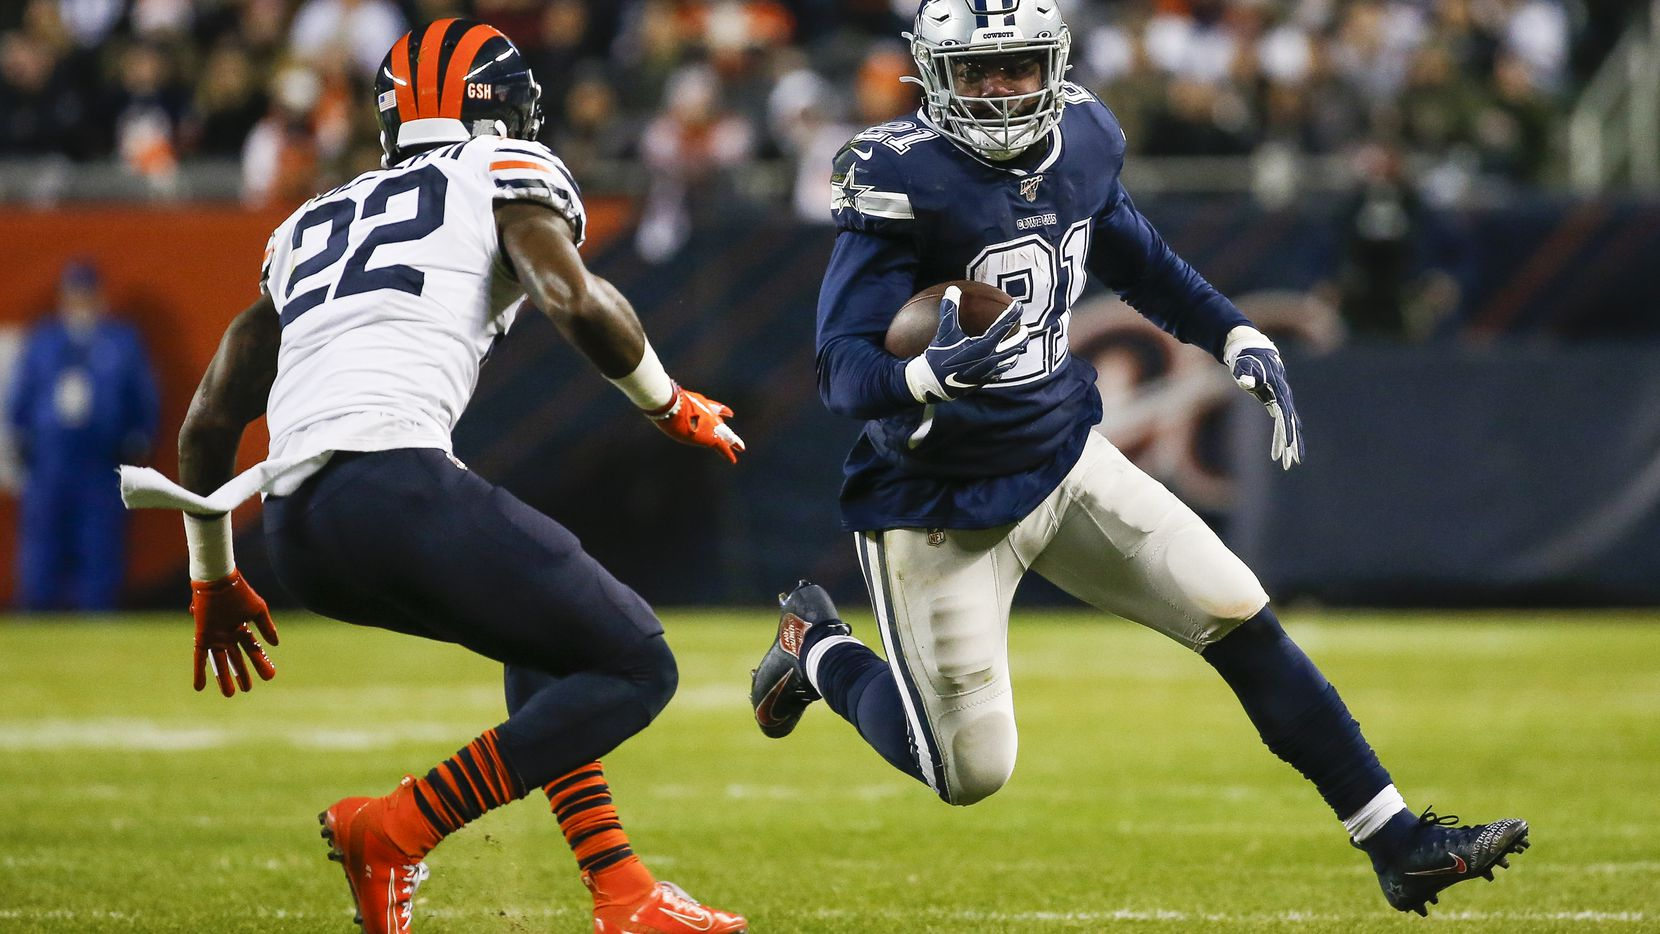 Dallas Cowboys running back Ezekiel Elliott (21) makes a break past Chicago Bears defensive back Kevin Toliver (22) during the first half a NFL matchup between the Dallas Cowboys and the Chicago Bears on Thursday, Dec. 5, 2019, at Soldier Field in Chicago. (Ryan Michalesko/The Dallas Morning News)